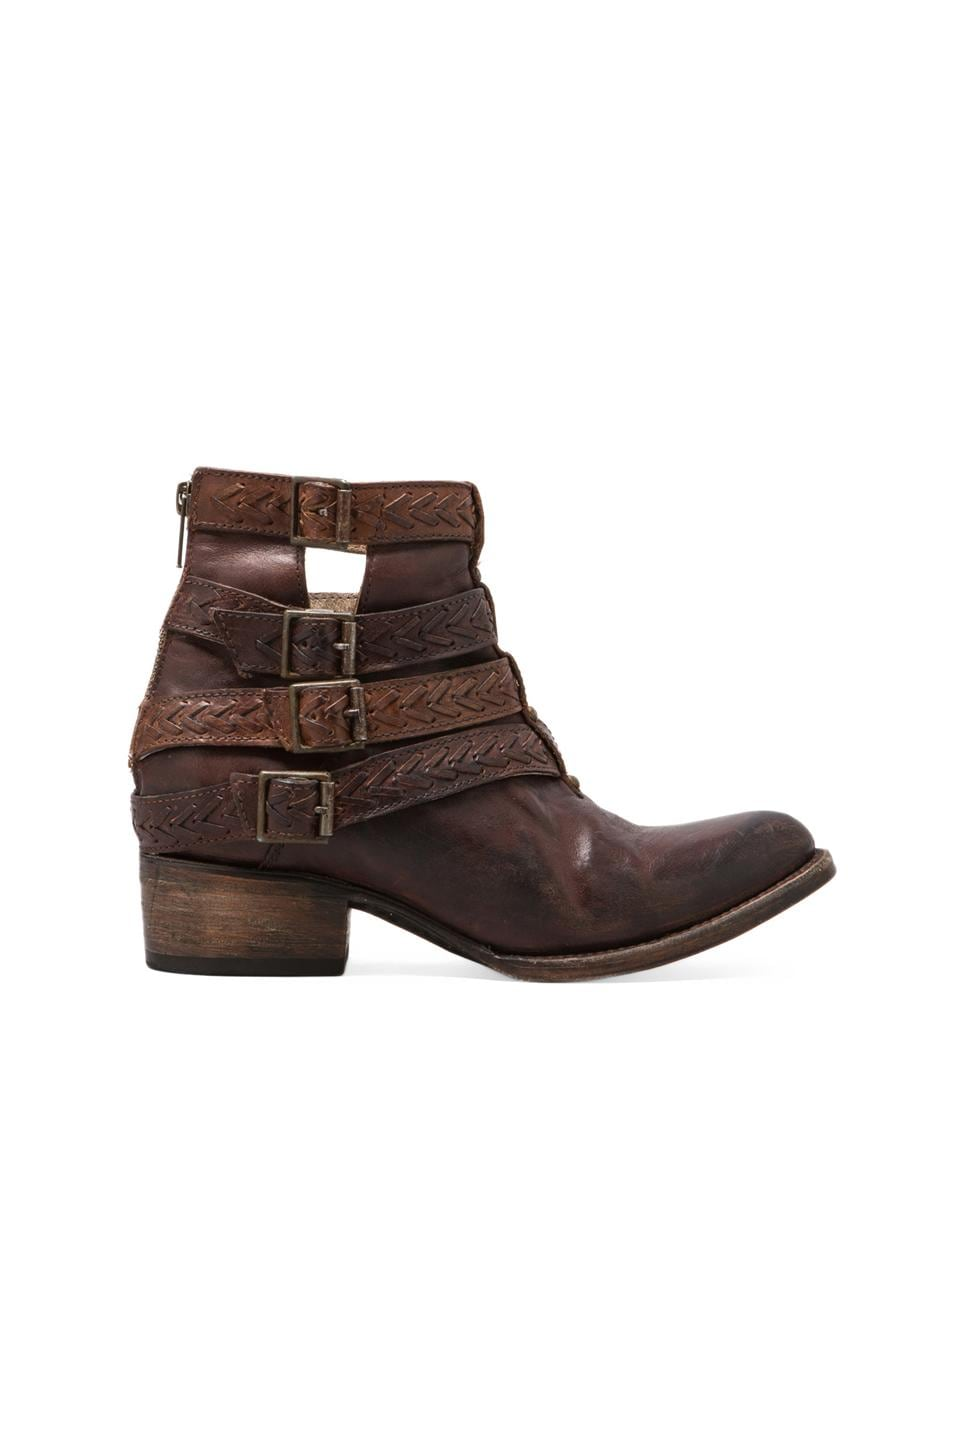 Freebird by Steven Roper Boot in Brown Leather